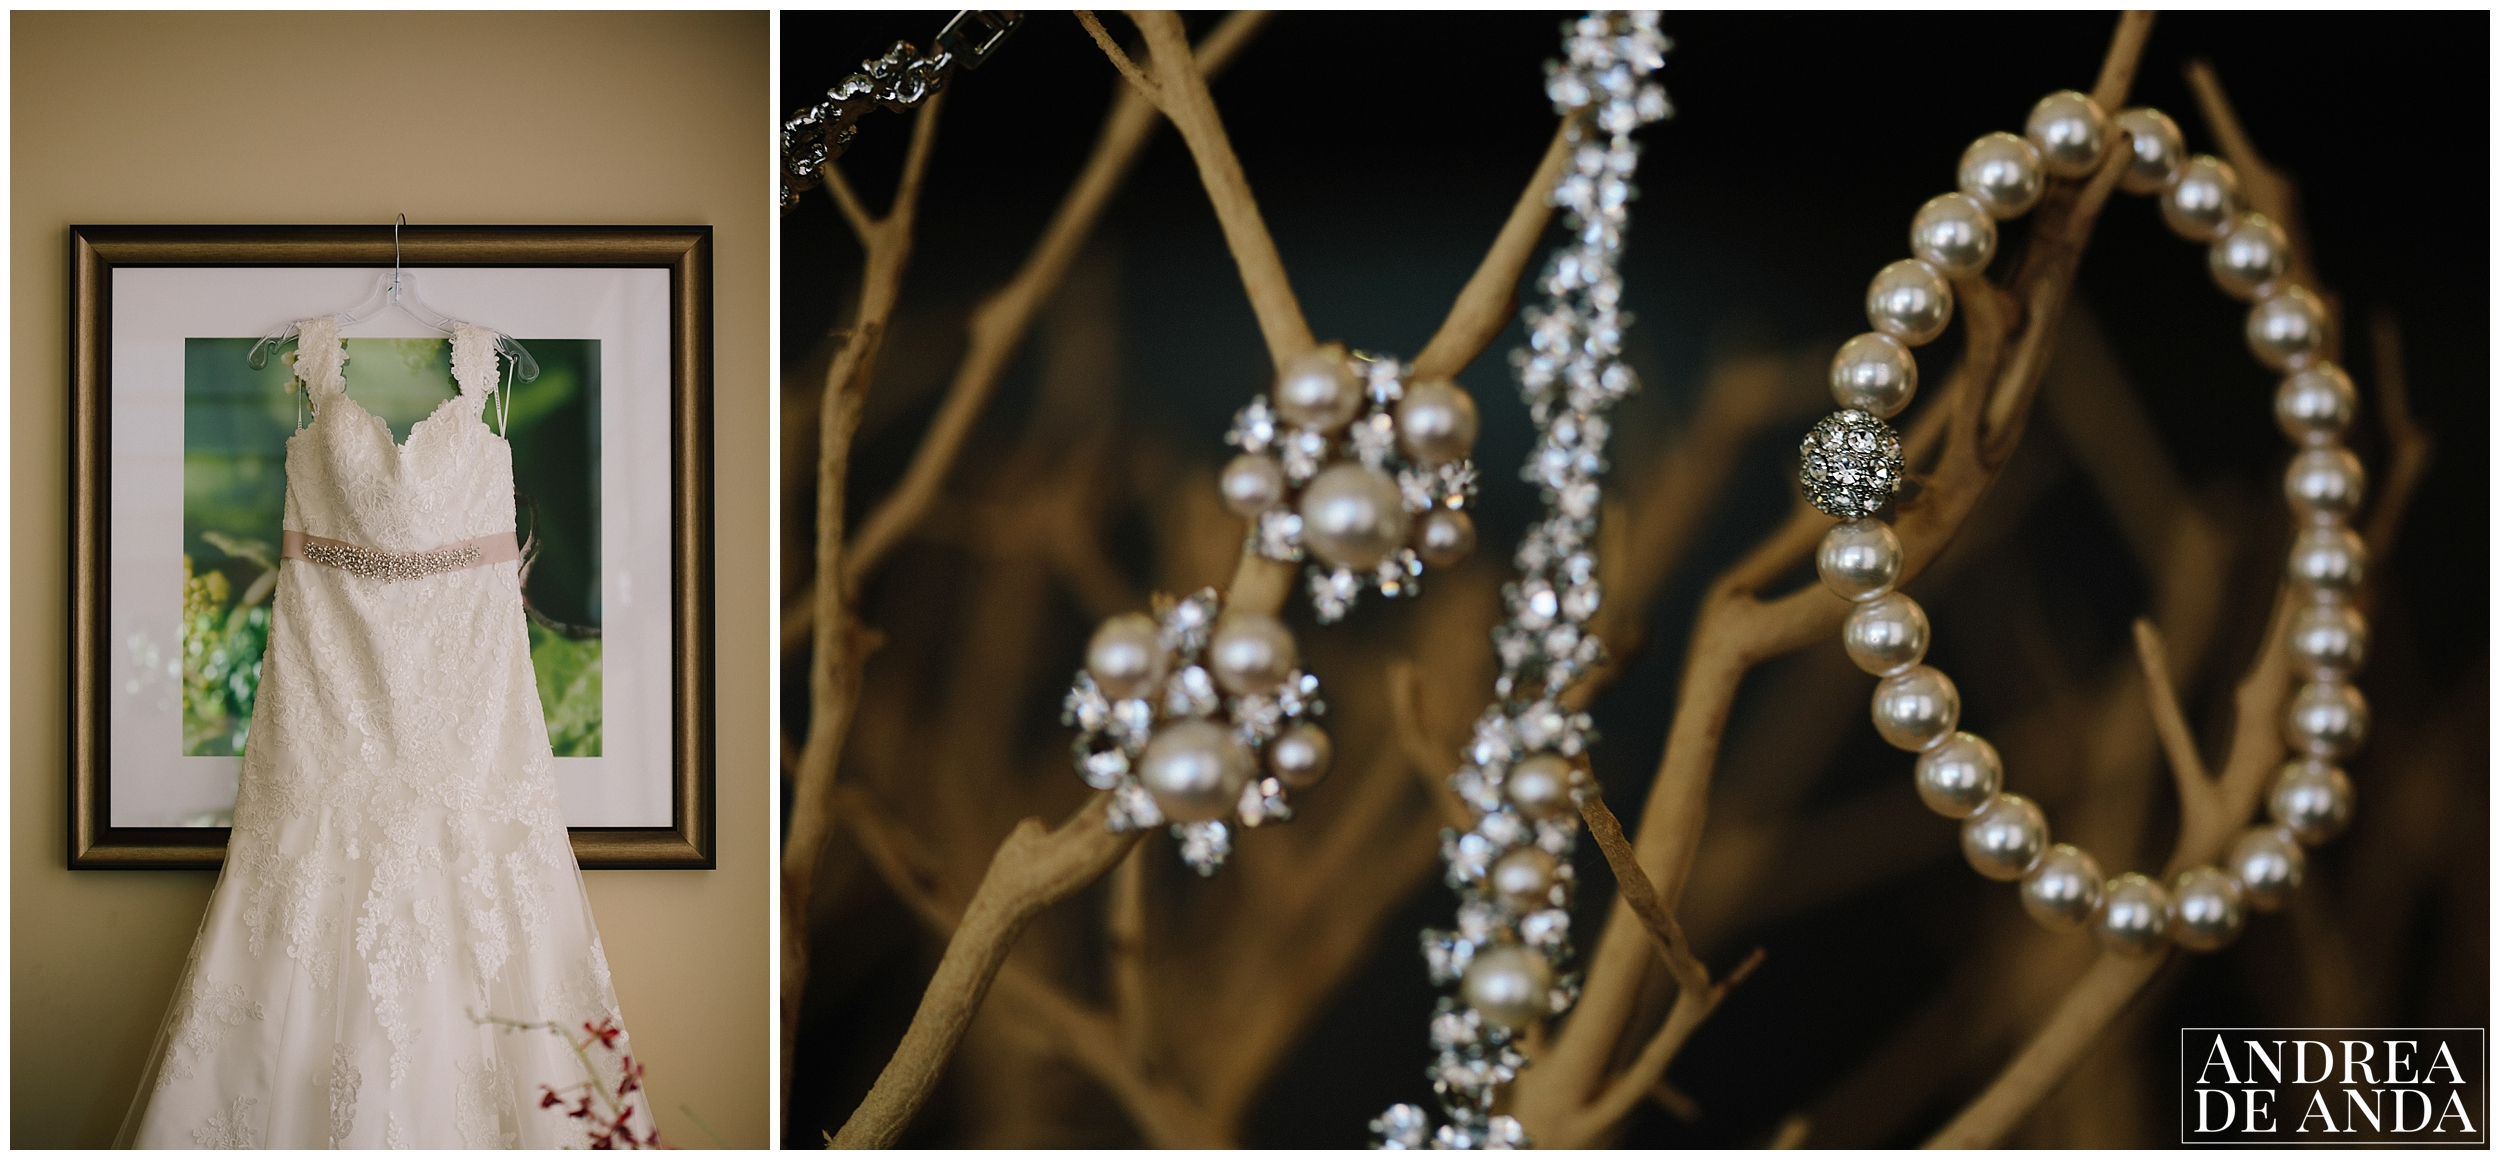 Bridal dress set up on wall art, bridal jewelry proped up for details session, shot with macro lens